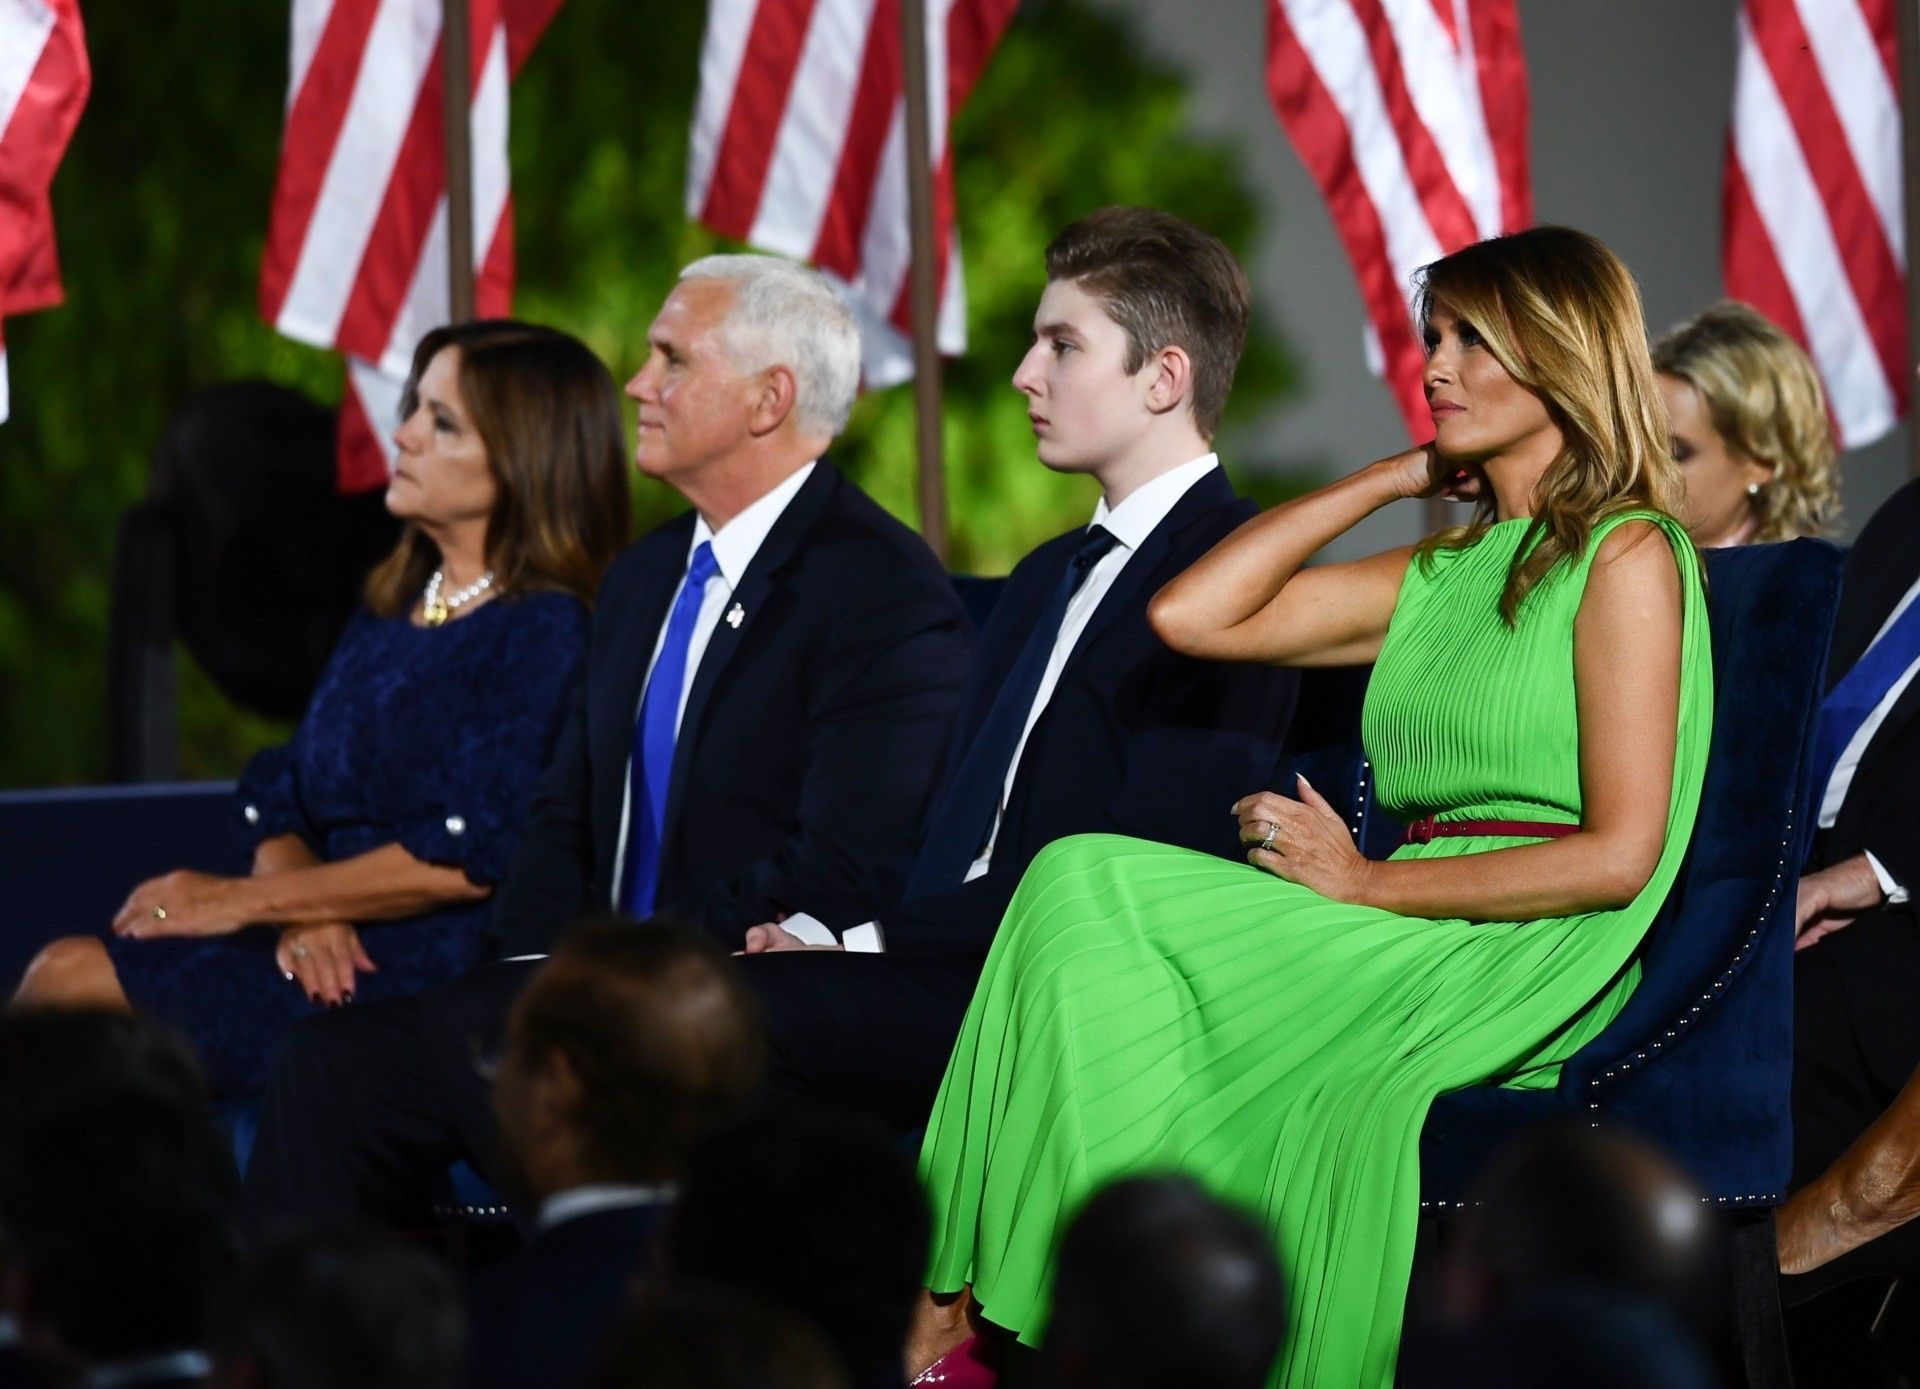 Pin By Mona Salama On What Melania Wore In 2020 First Lady Melania Trump Lime Green Dress Trump Is My President